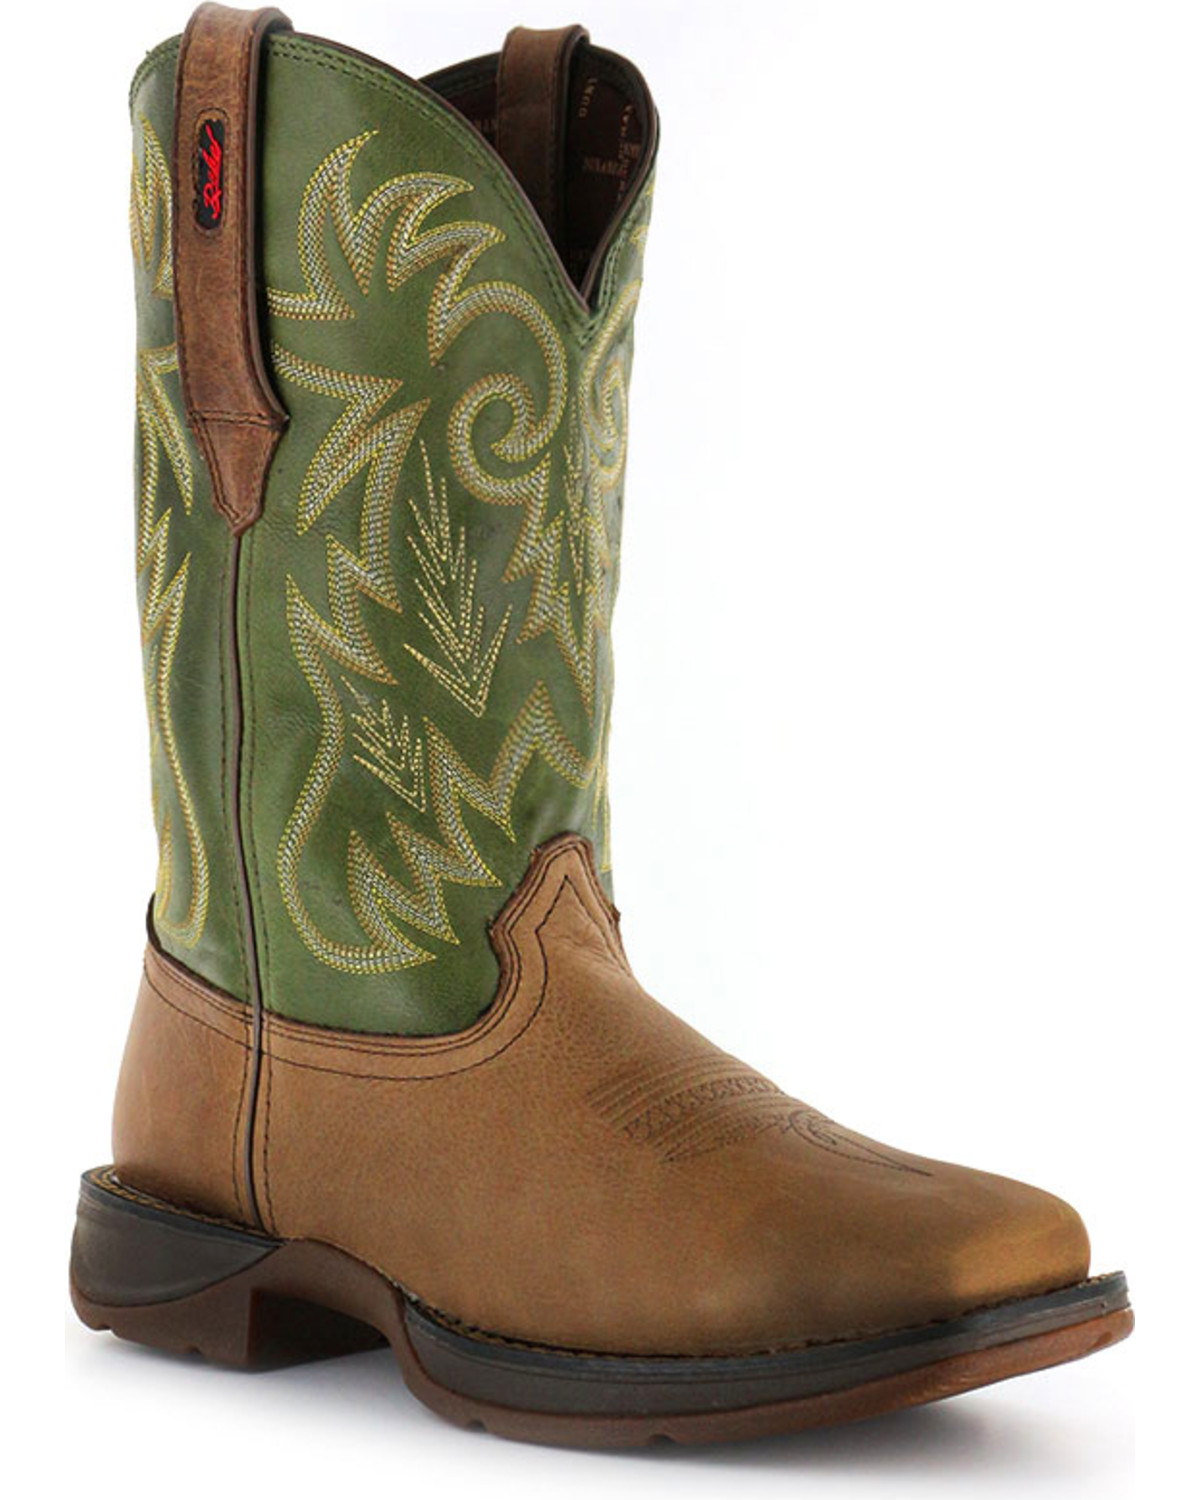 Durango Men's Rebel Pull-On Broad Square Toe Western Boots